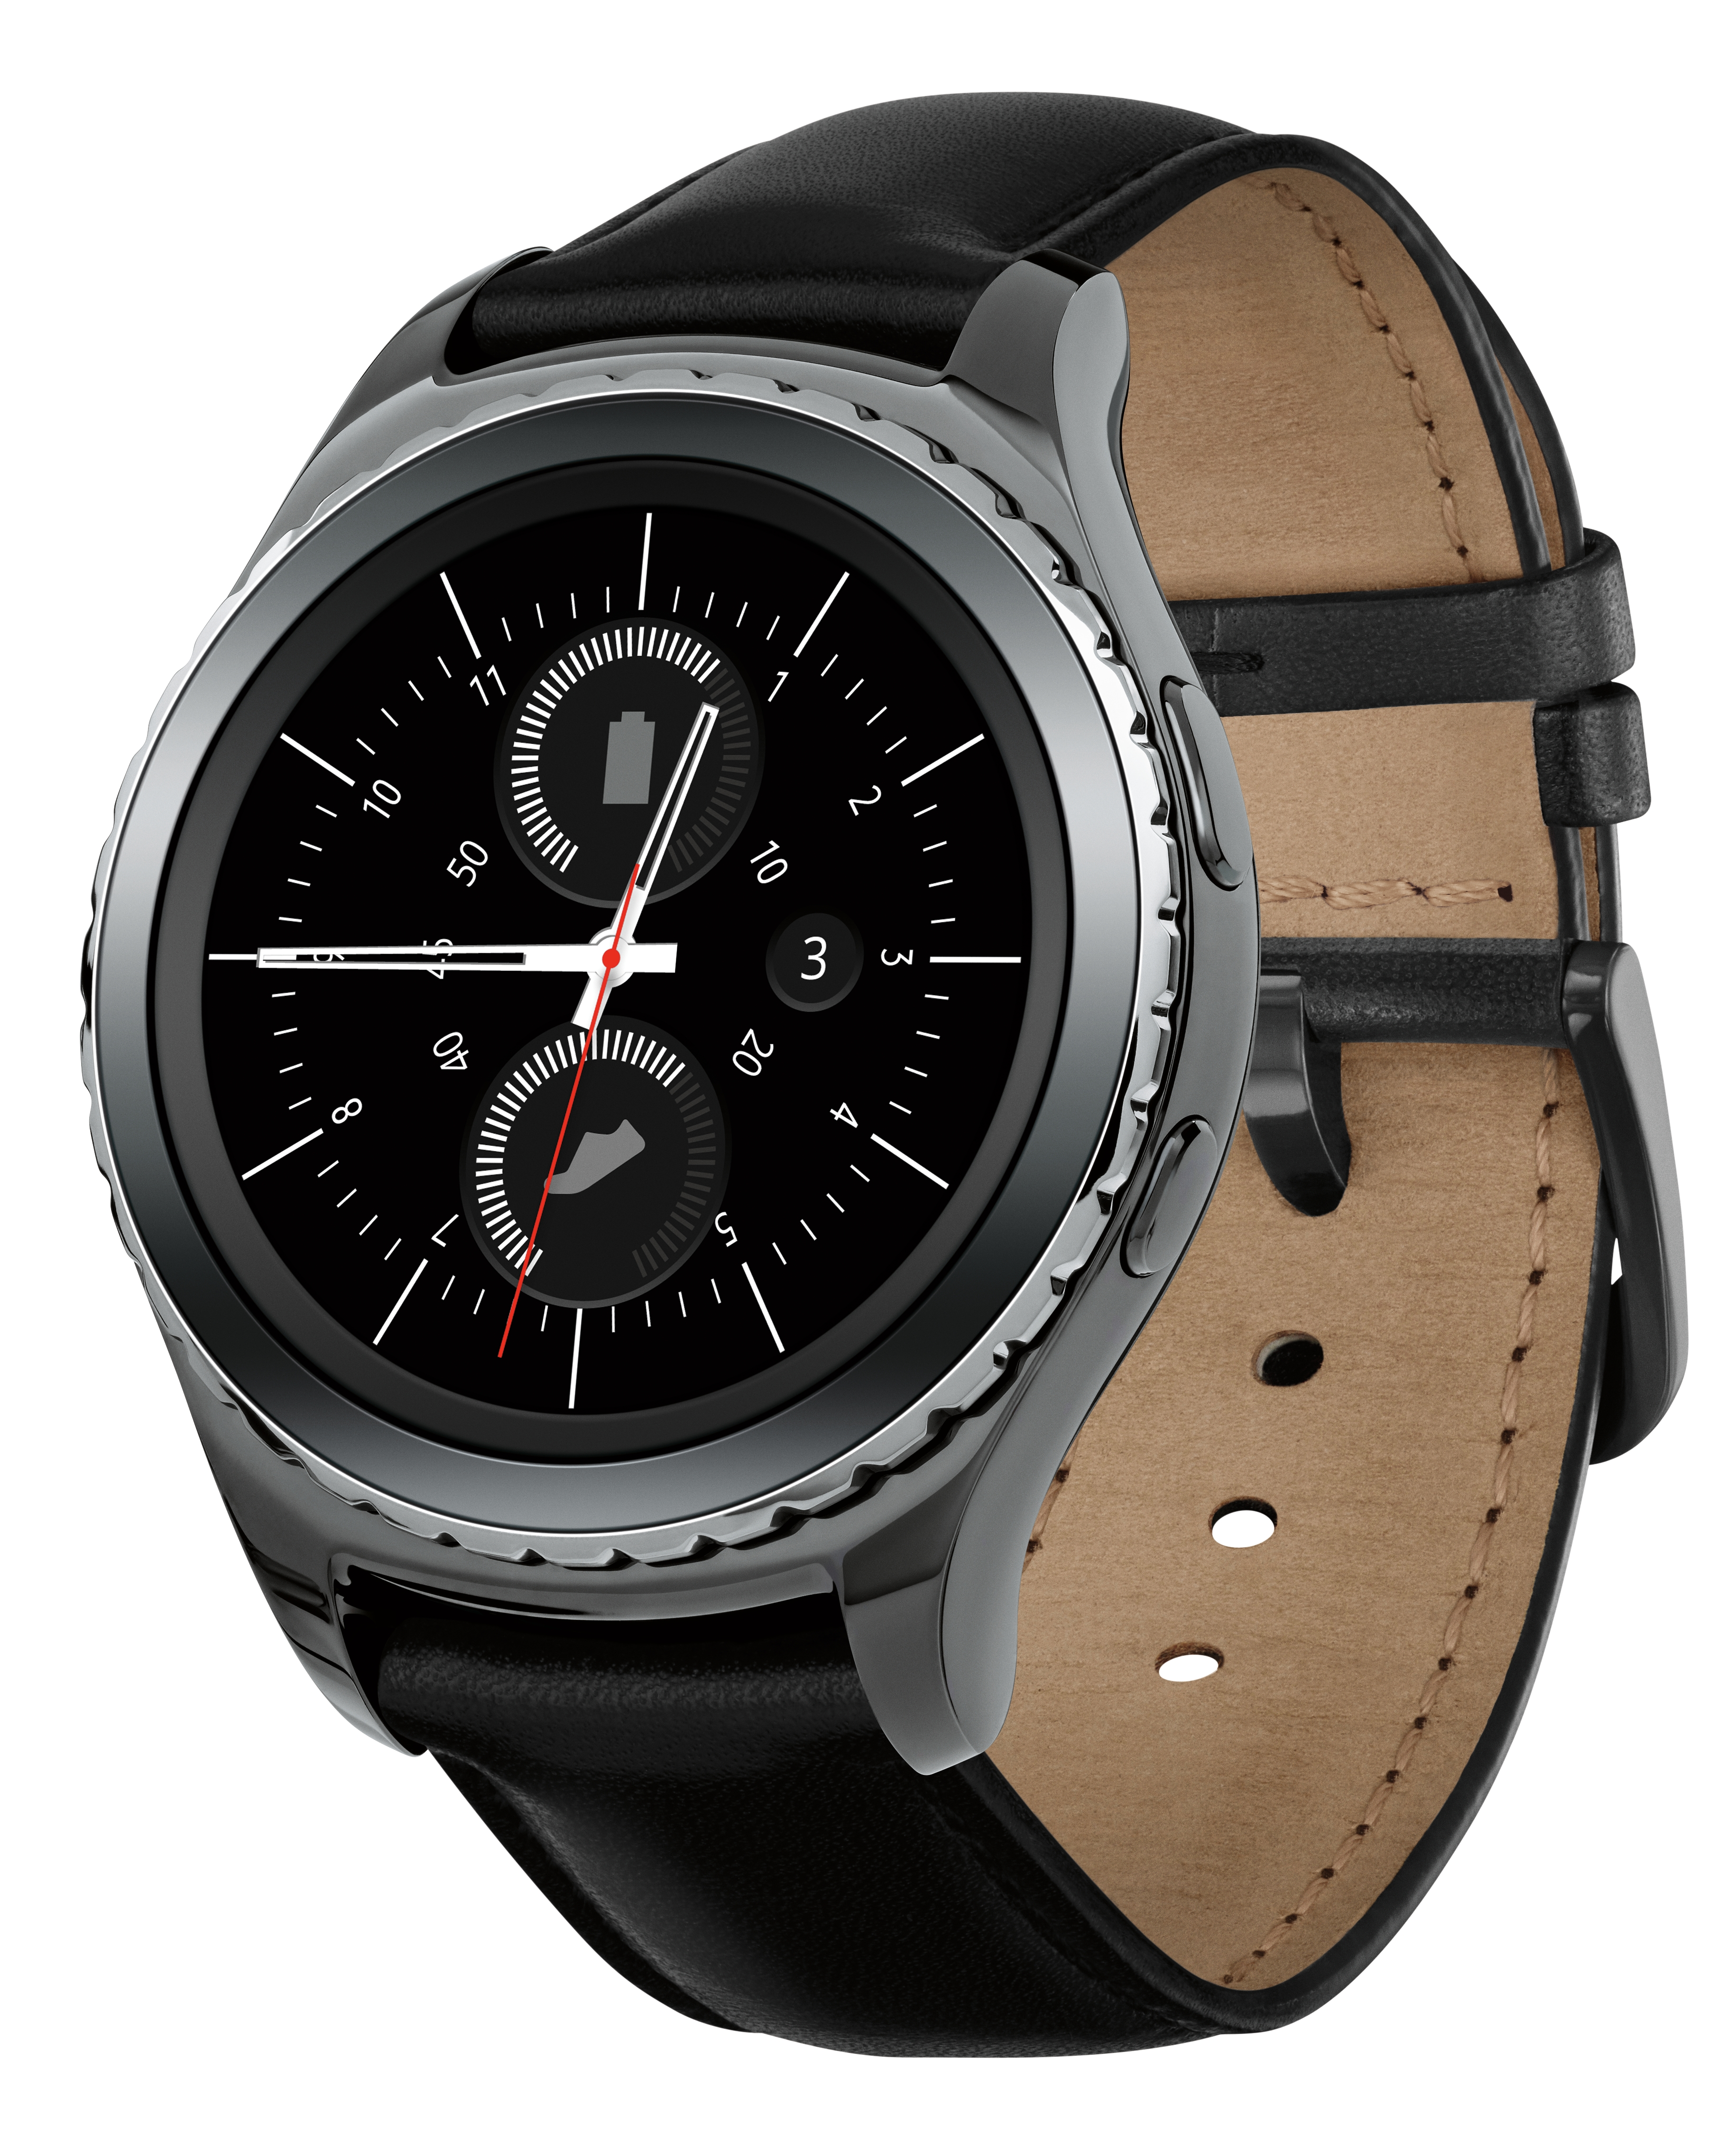 The Samsung Gear S2 classic 3G/4G will be available on select major wireless carriers beginning March 11, 2016. (Photo: Business Wire)